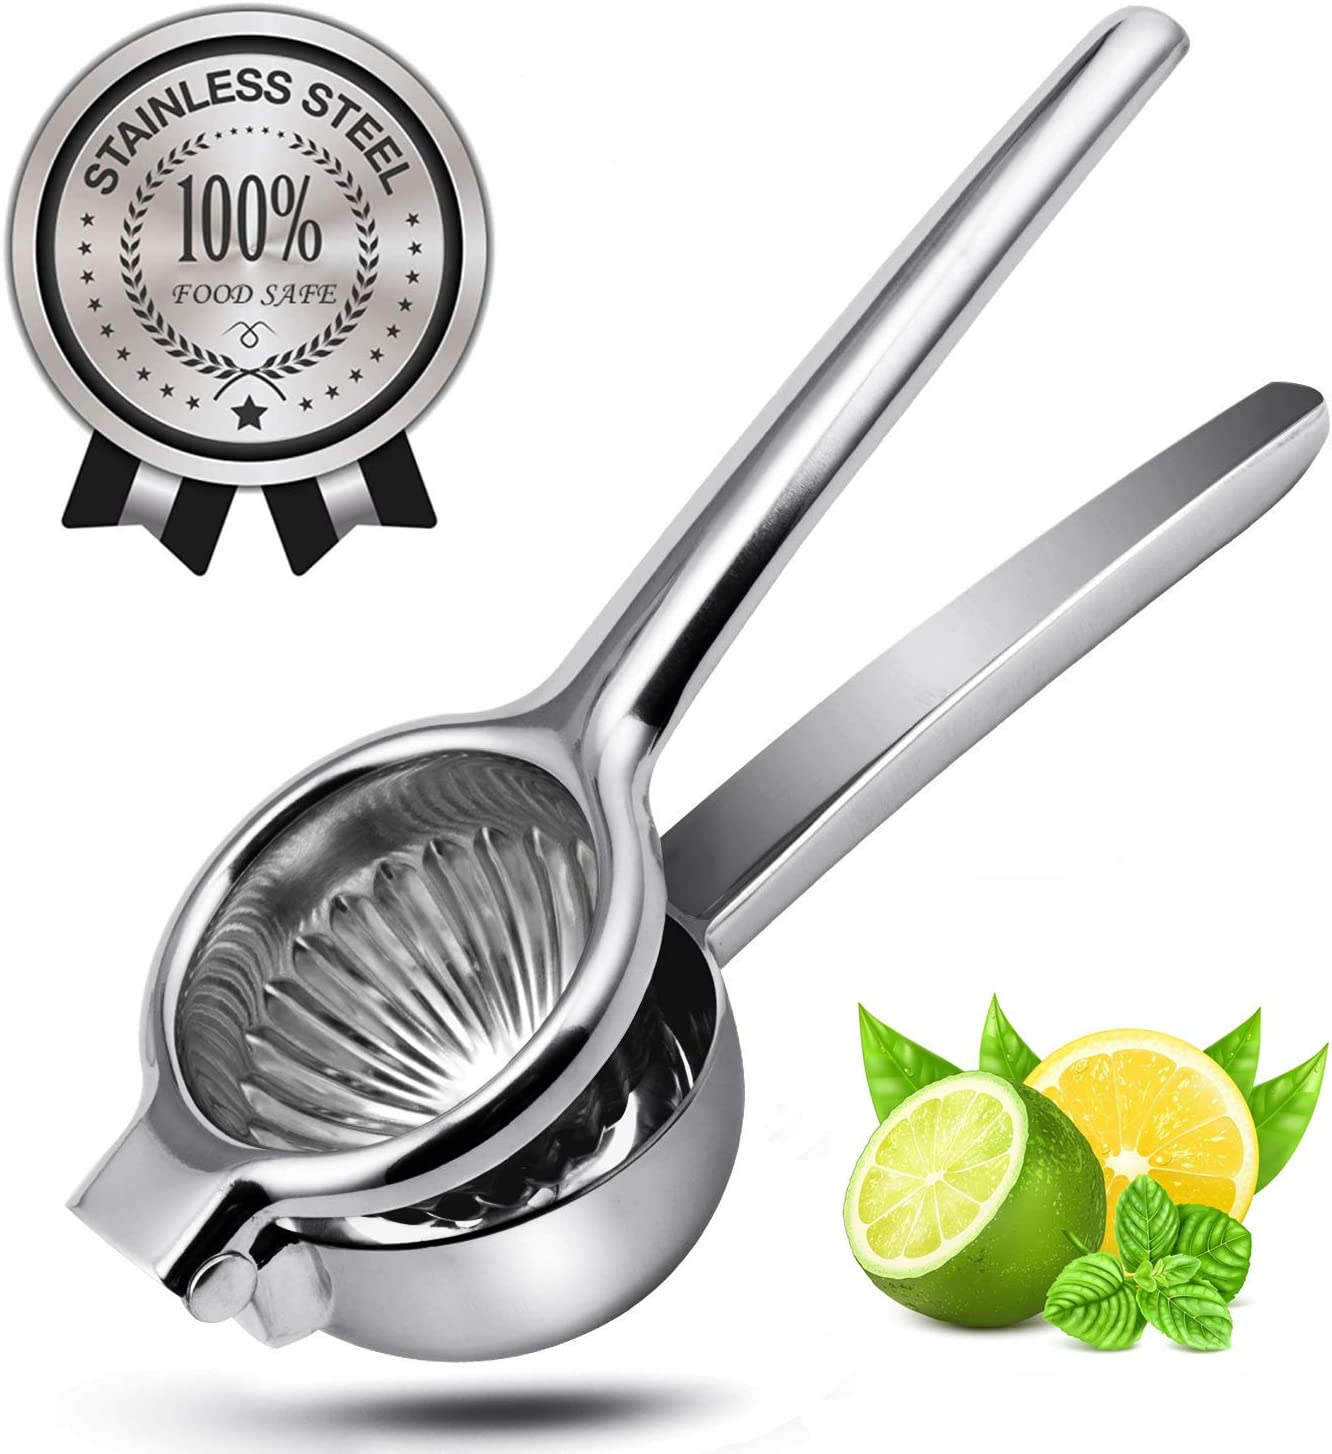 YeCheer Lemon Squeezer Stainless Steel Heavy Duty Manual Lime Citrus Press Juicer with Large Bowl